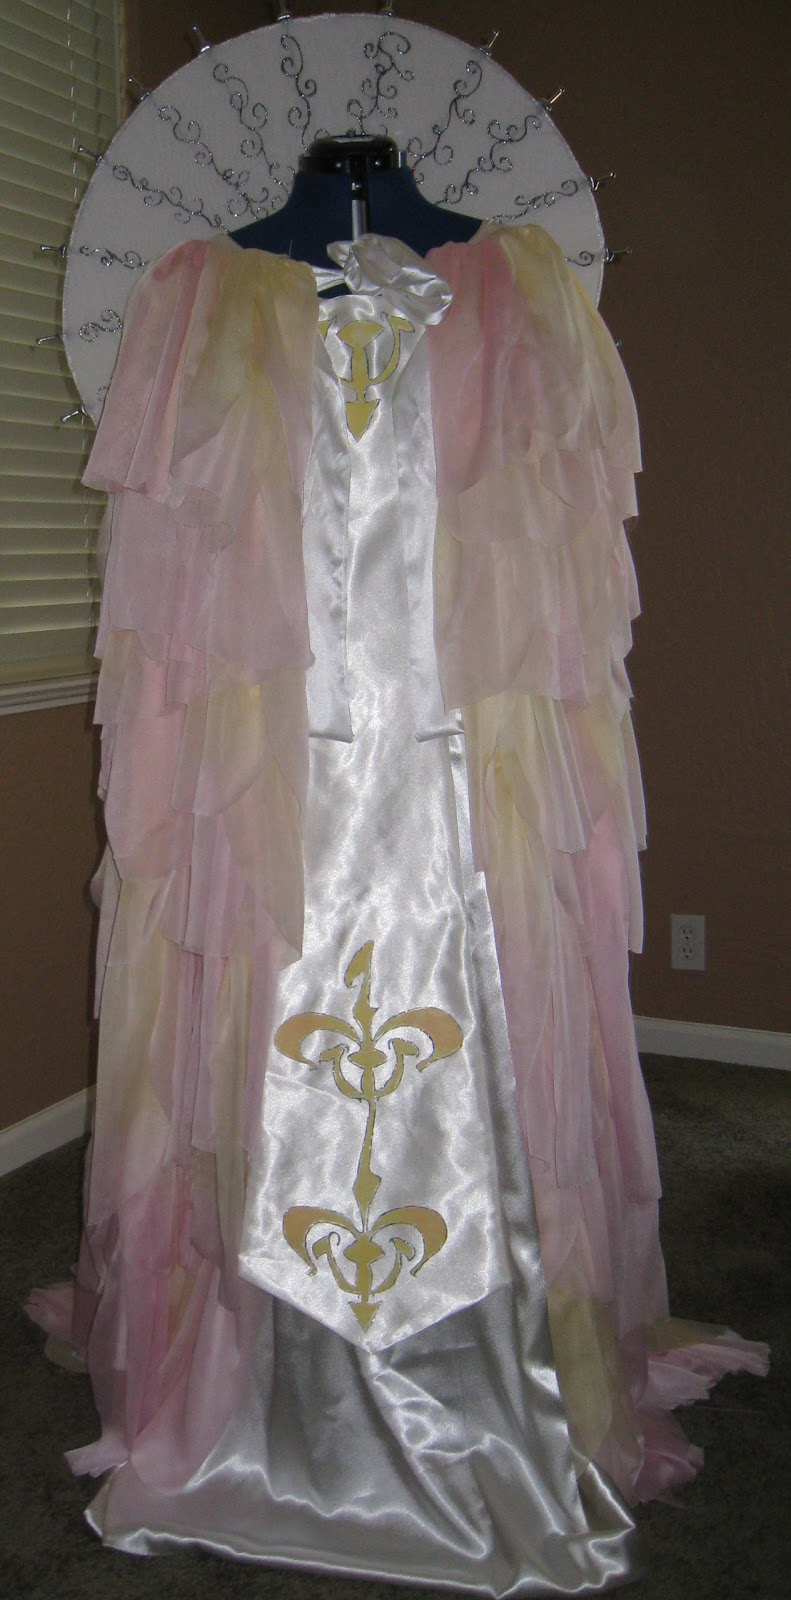 Star Wars Couture: Star Wars Episode I - Celebration Parade Gown